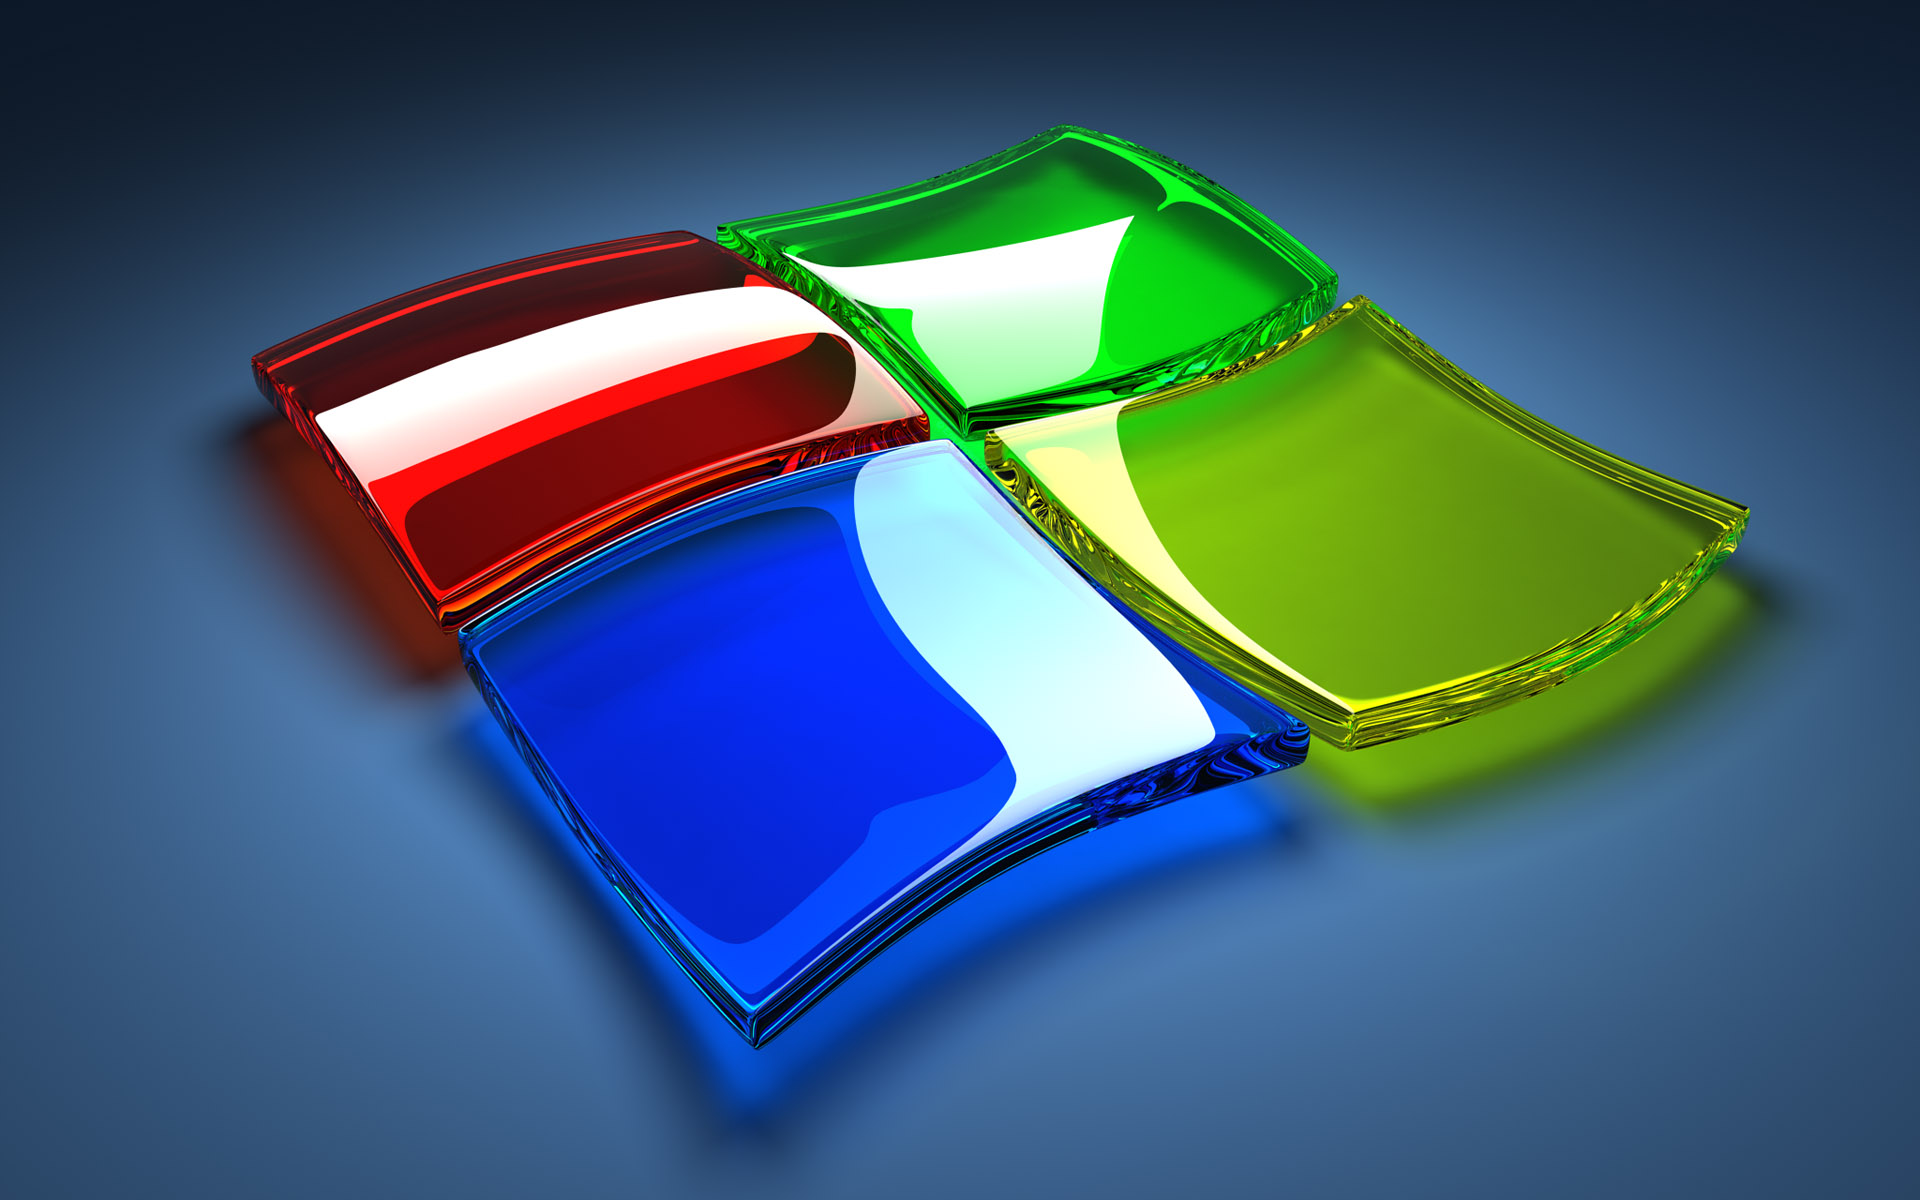 Download Microsoft Windows 8 Wallpapers Pack 2 1920x1200